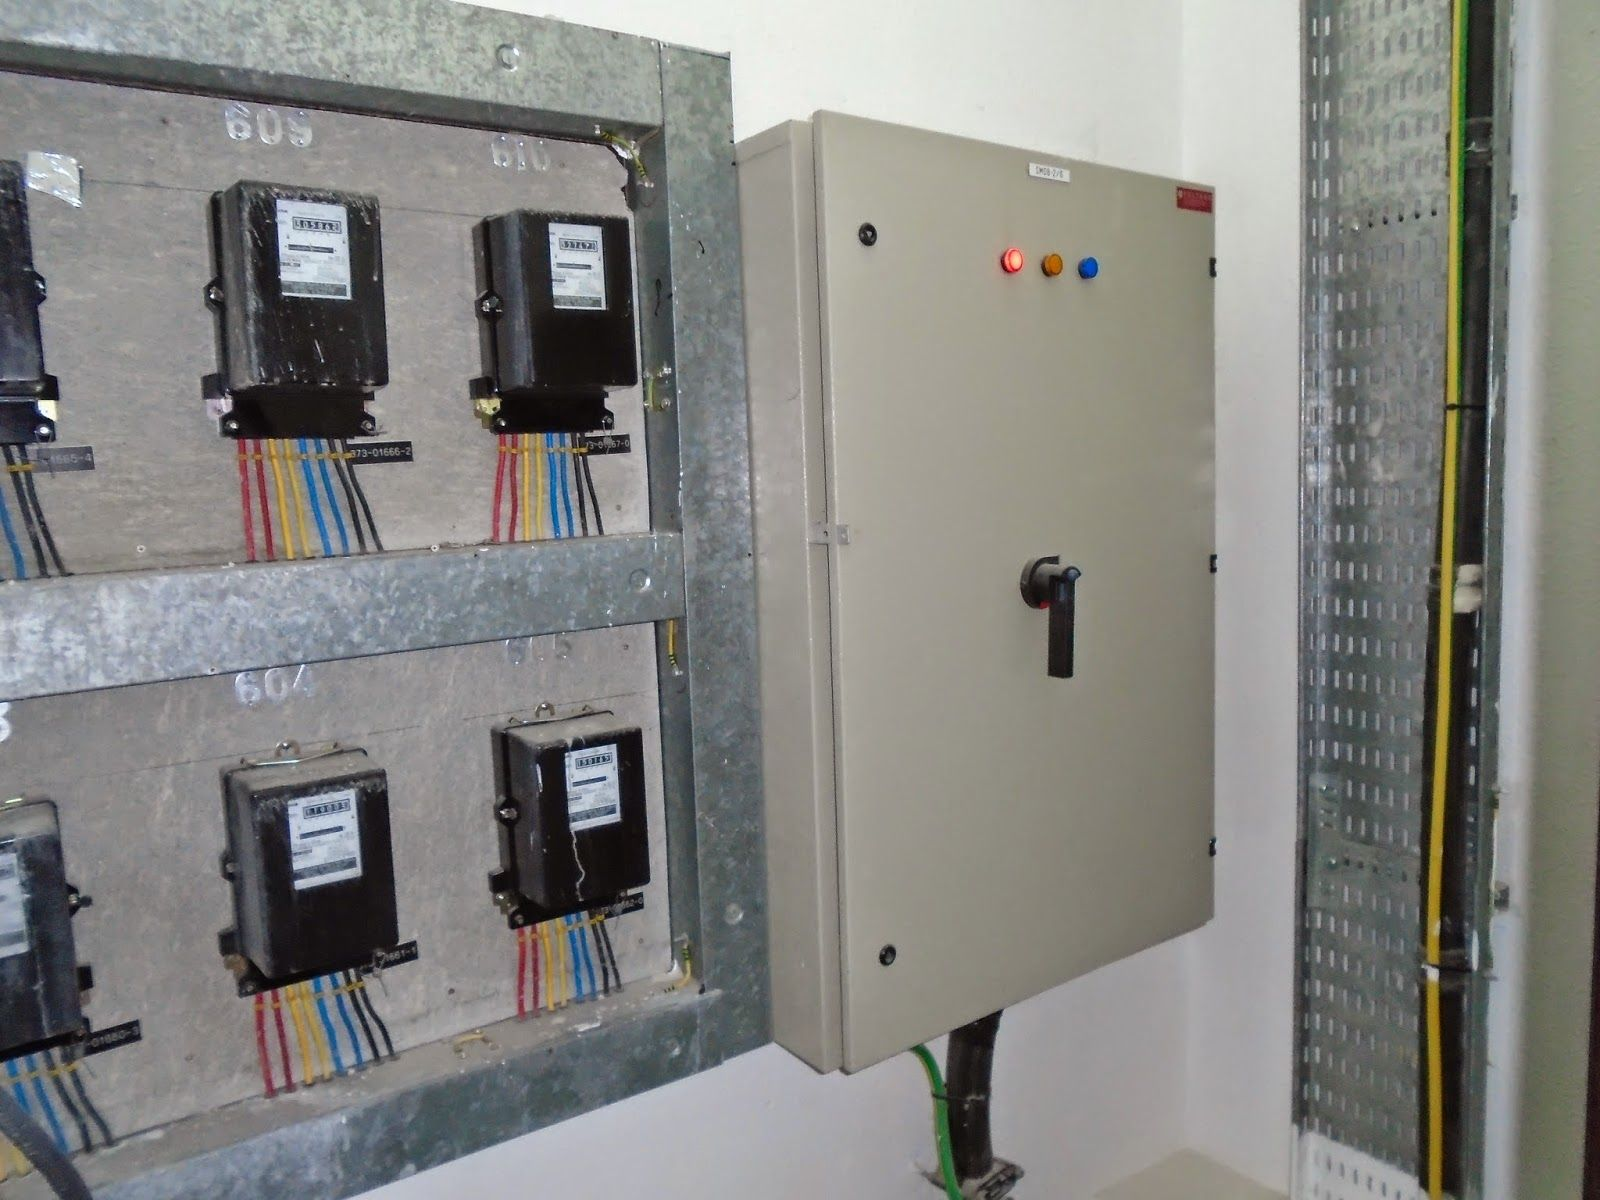 hight resolution of electrical wiring in bangladesh smdb and meter basic basic home electrical wiring diagram